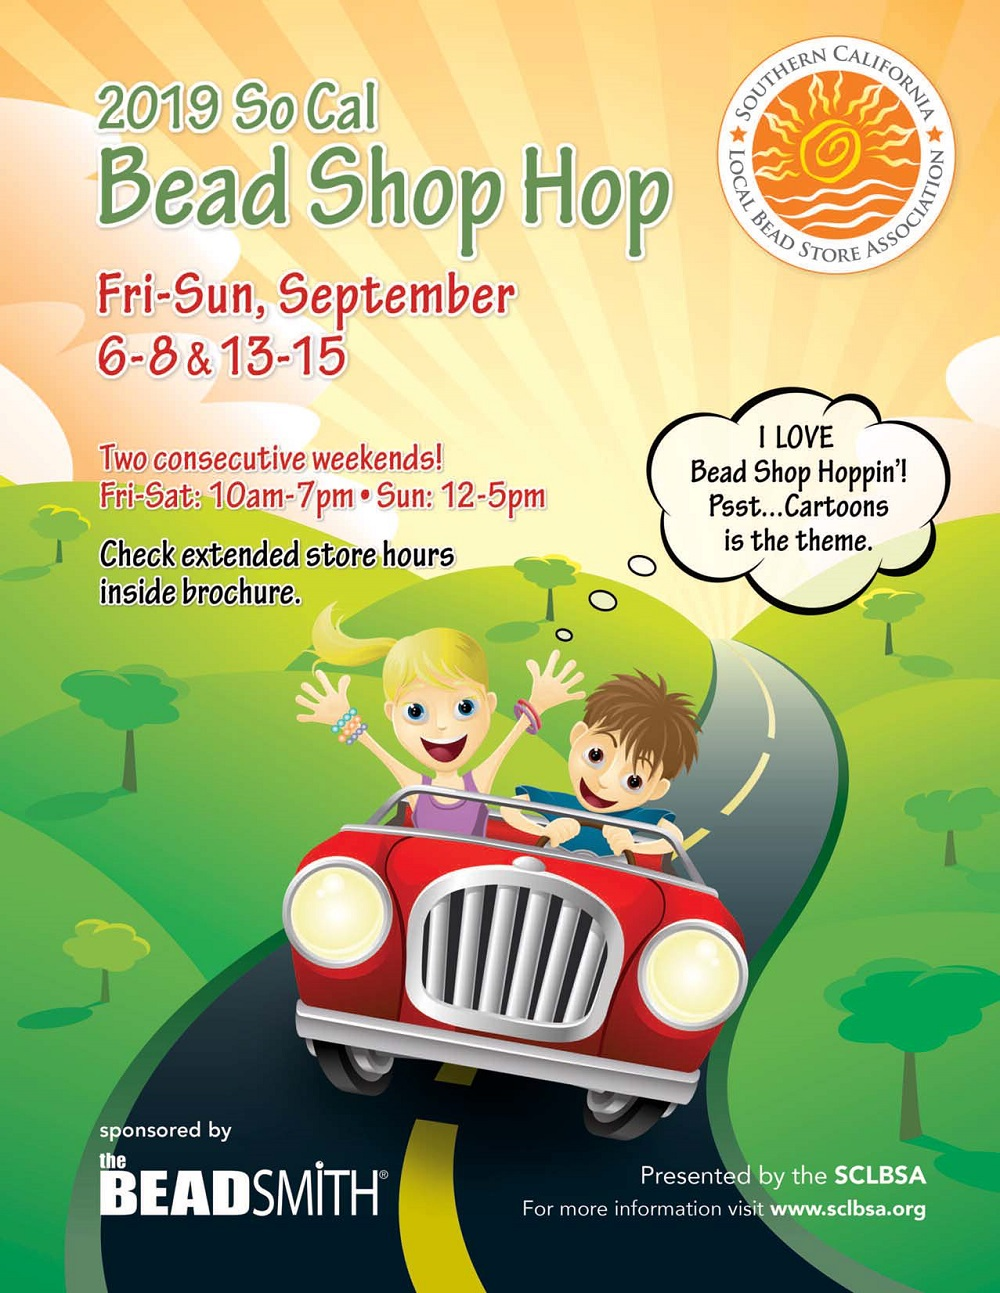 The 2019 SoCal Bead Shop Hop brochure is available for download at www.sclbsa.org/event.